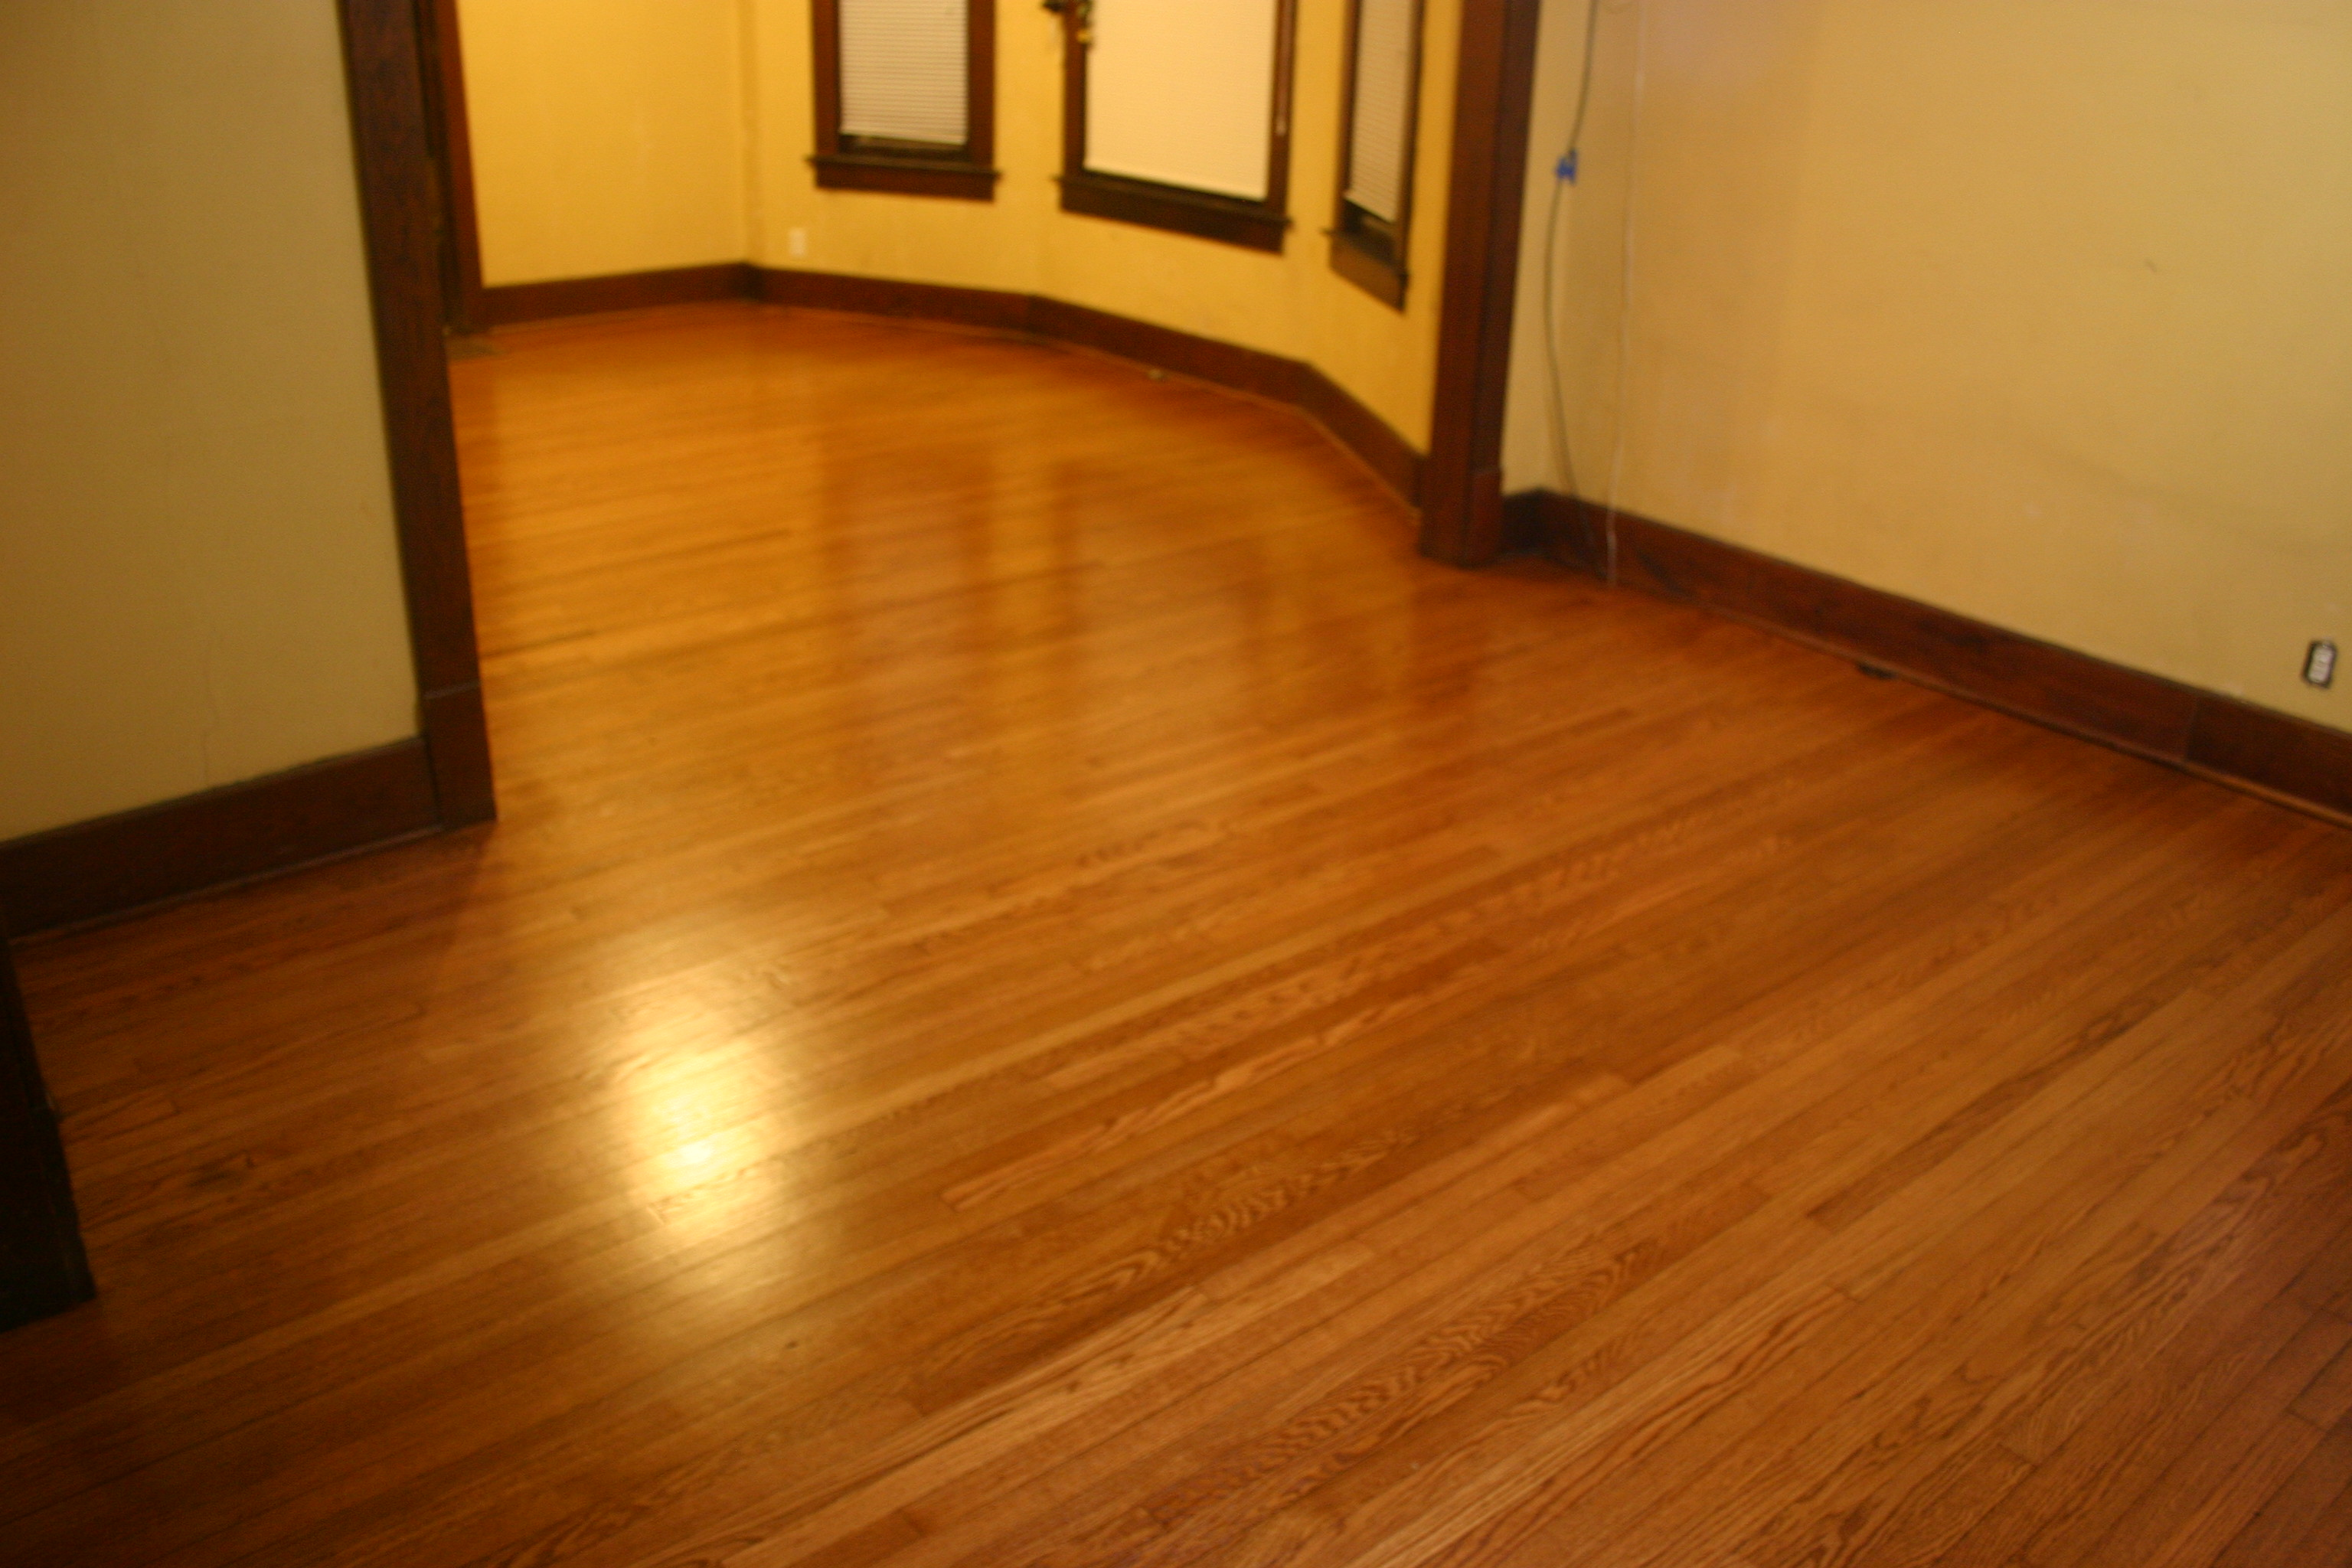 Popular Early American Floor Stain - Flooring Ideas and Inspiration WQ85